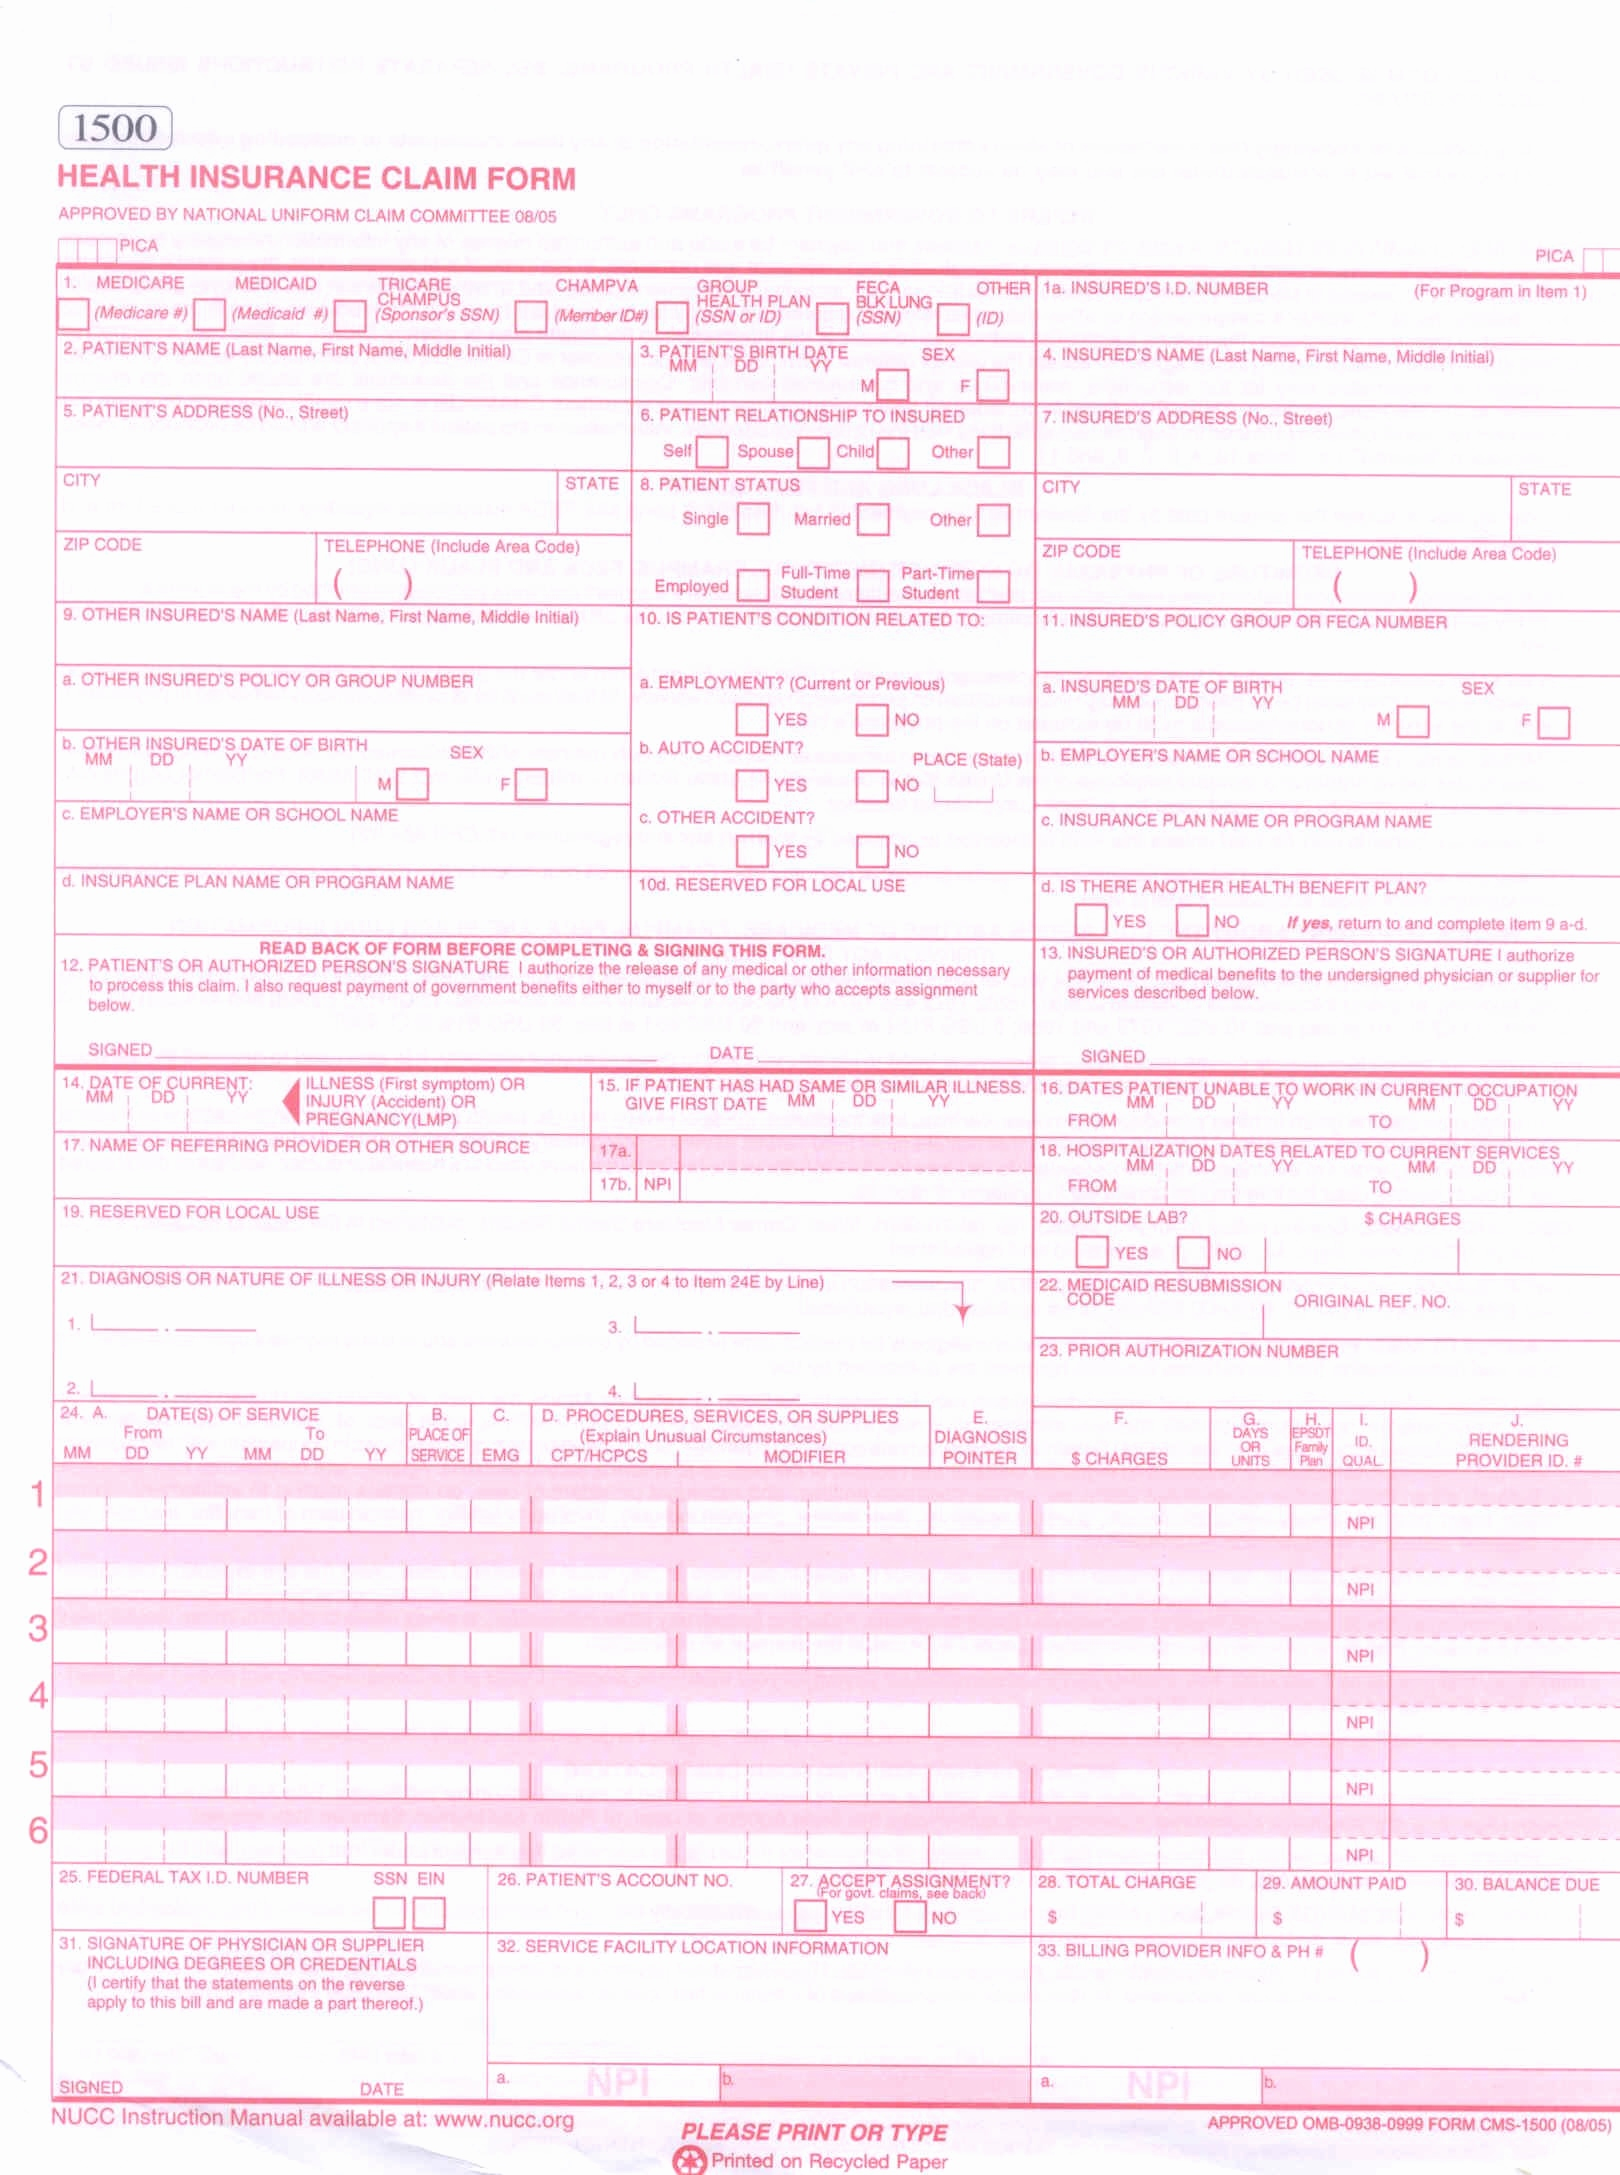 Cms 1500 Form Template Fresh E Part Cms 1500 Continuous Claim Form Stockchecks Wcms1500 Pantacake